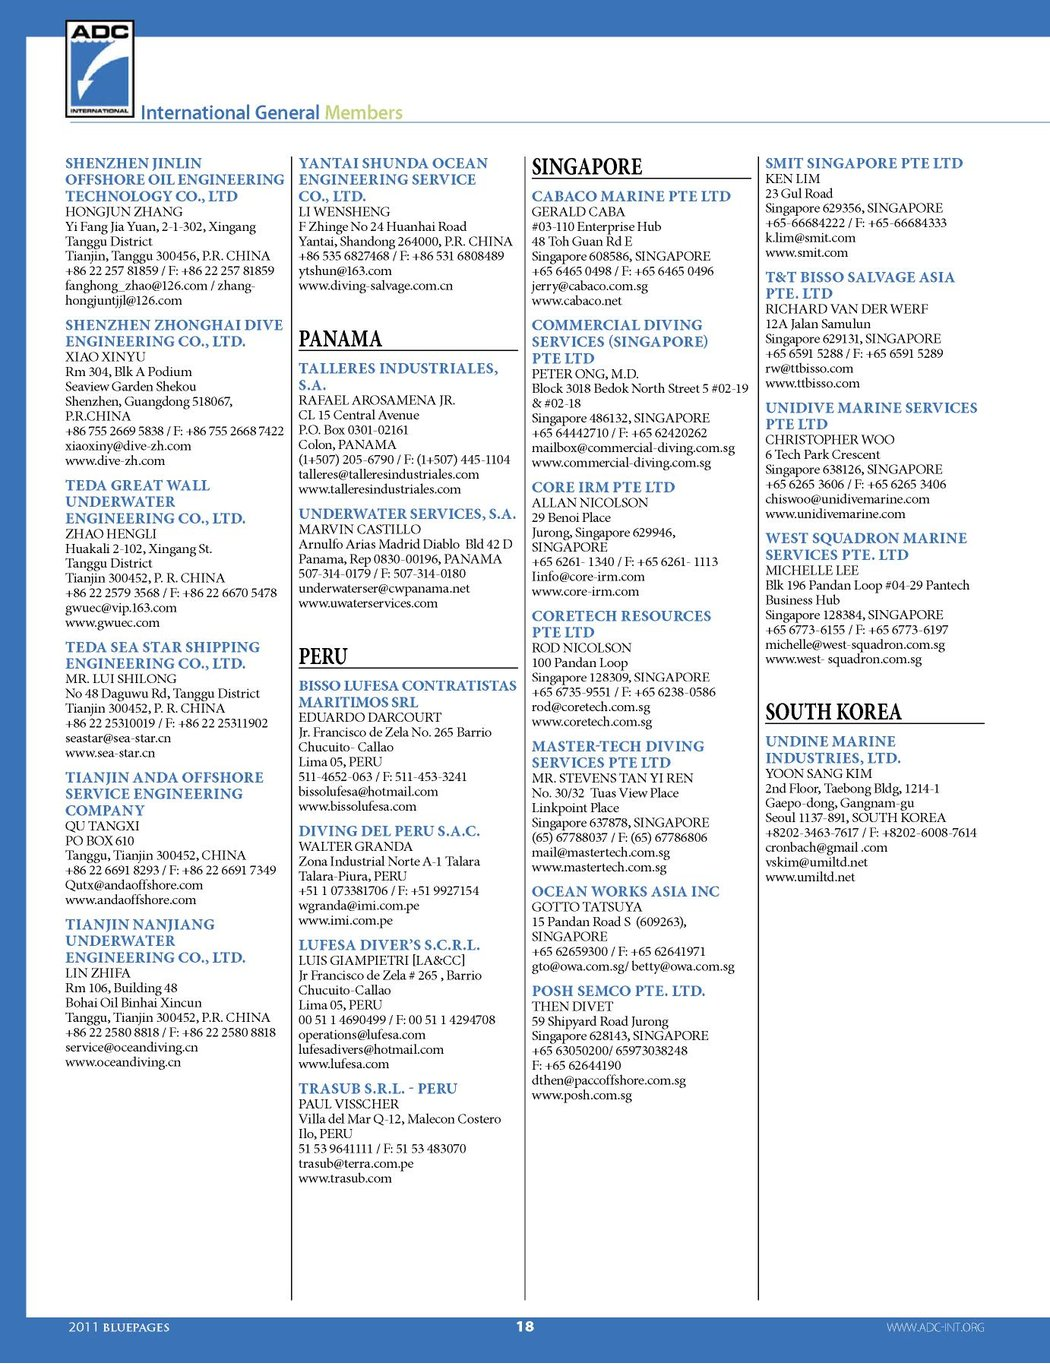 ADCI Blue Pages 2011 Membership Directory